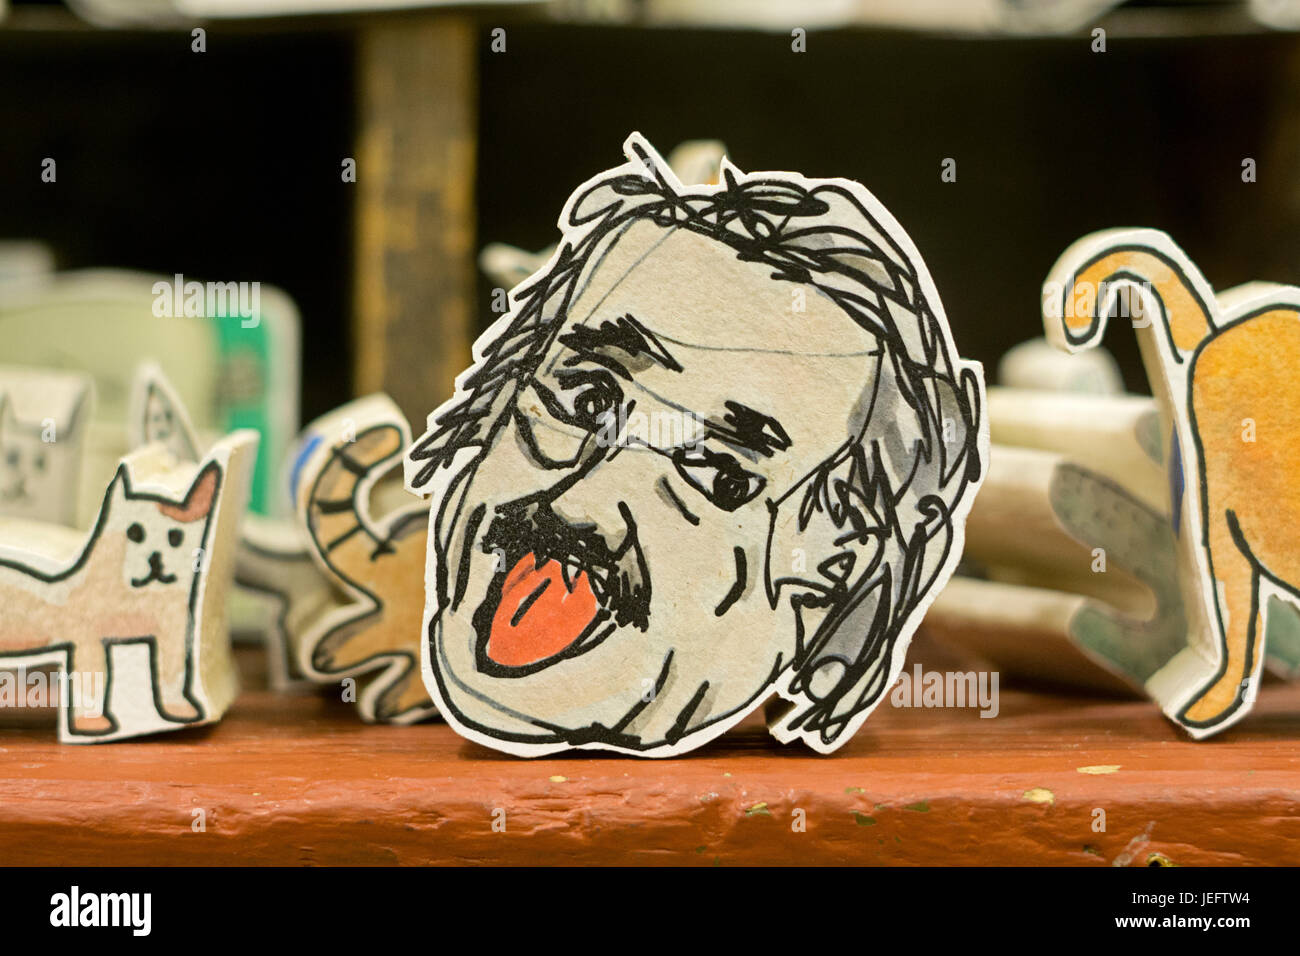 An  wooden block shaped like Albert Einstein's head for sale at Fishs Eddy, a Manhattan store selling an eclectic - Stock Image